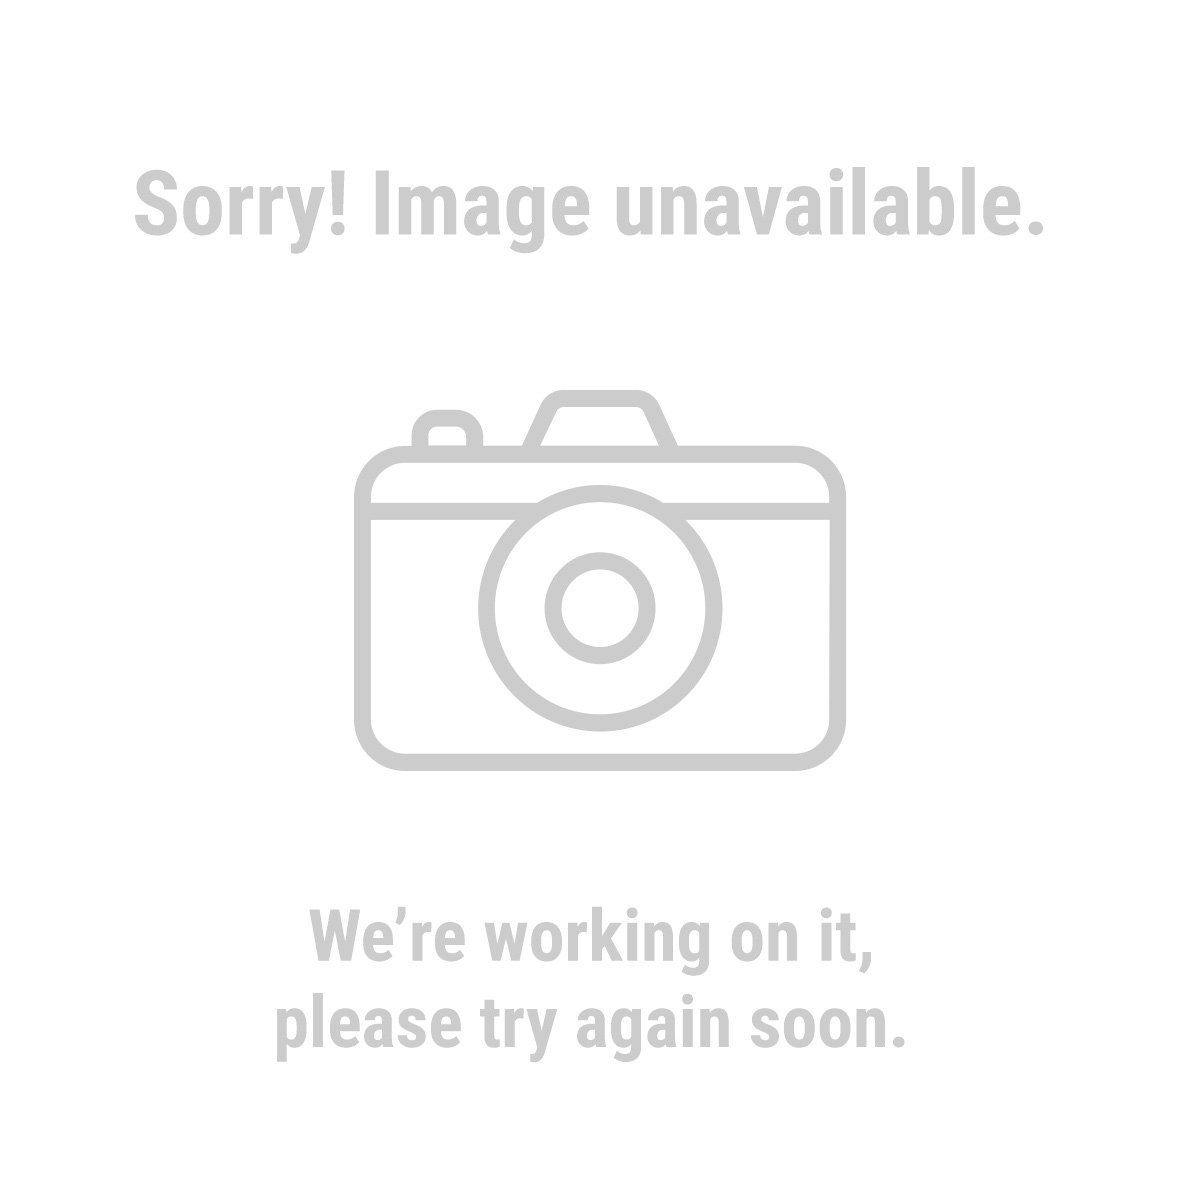 HFT 69456 10 ft. x 10 ft. Popup Canopy